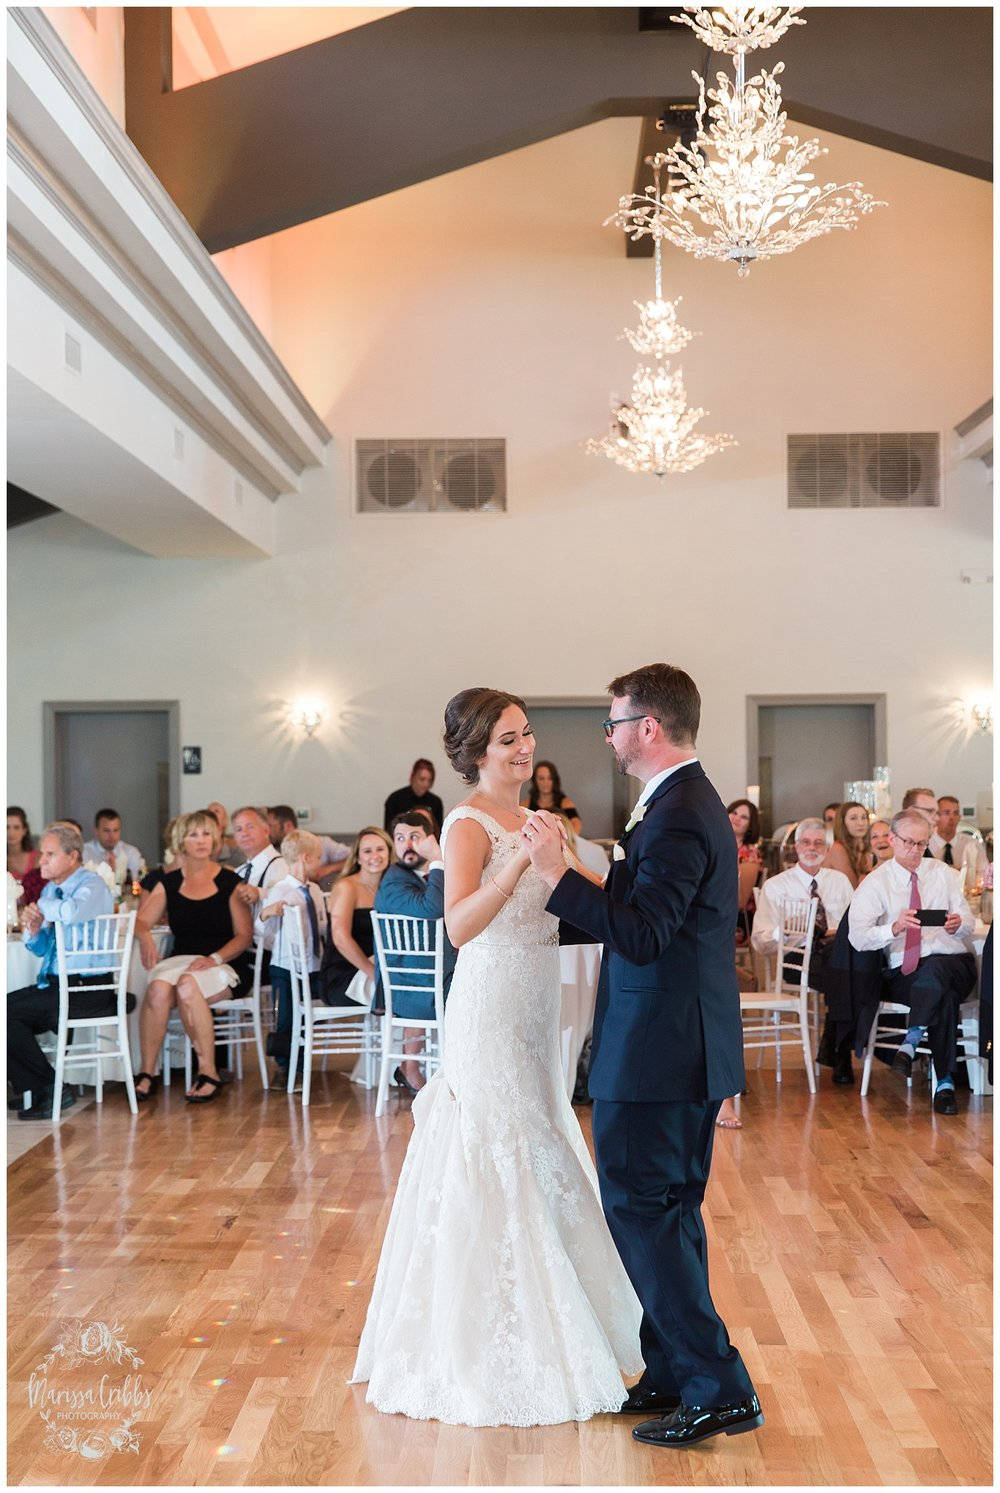 1890 Event Space | BRIN & ANDREW | MARISSA CRIBBS PHOTOGRAPHY_2514.jpg